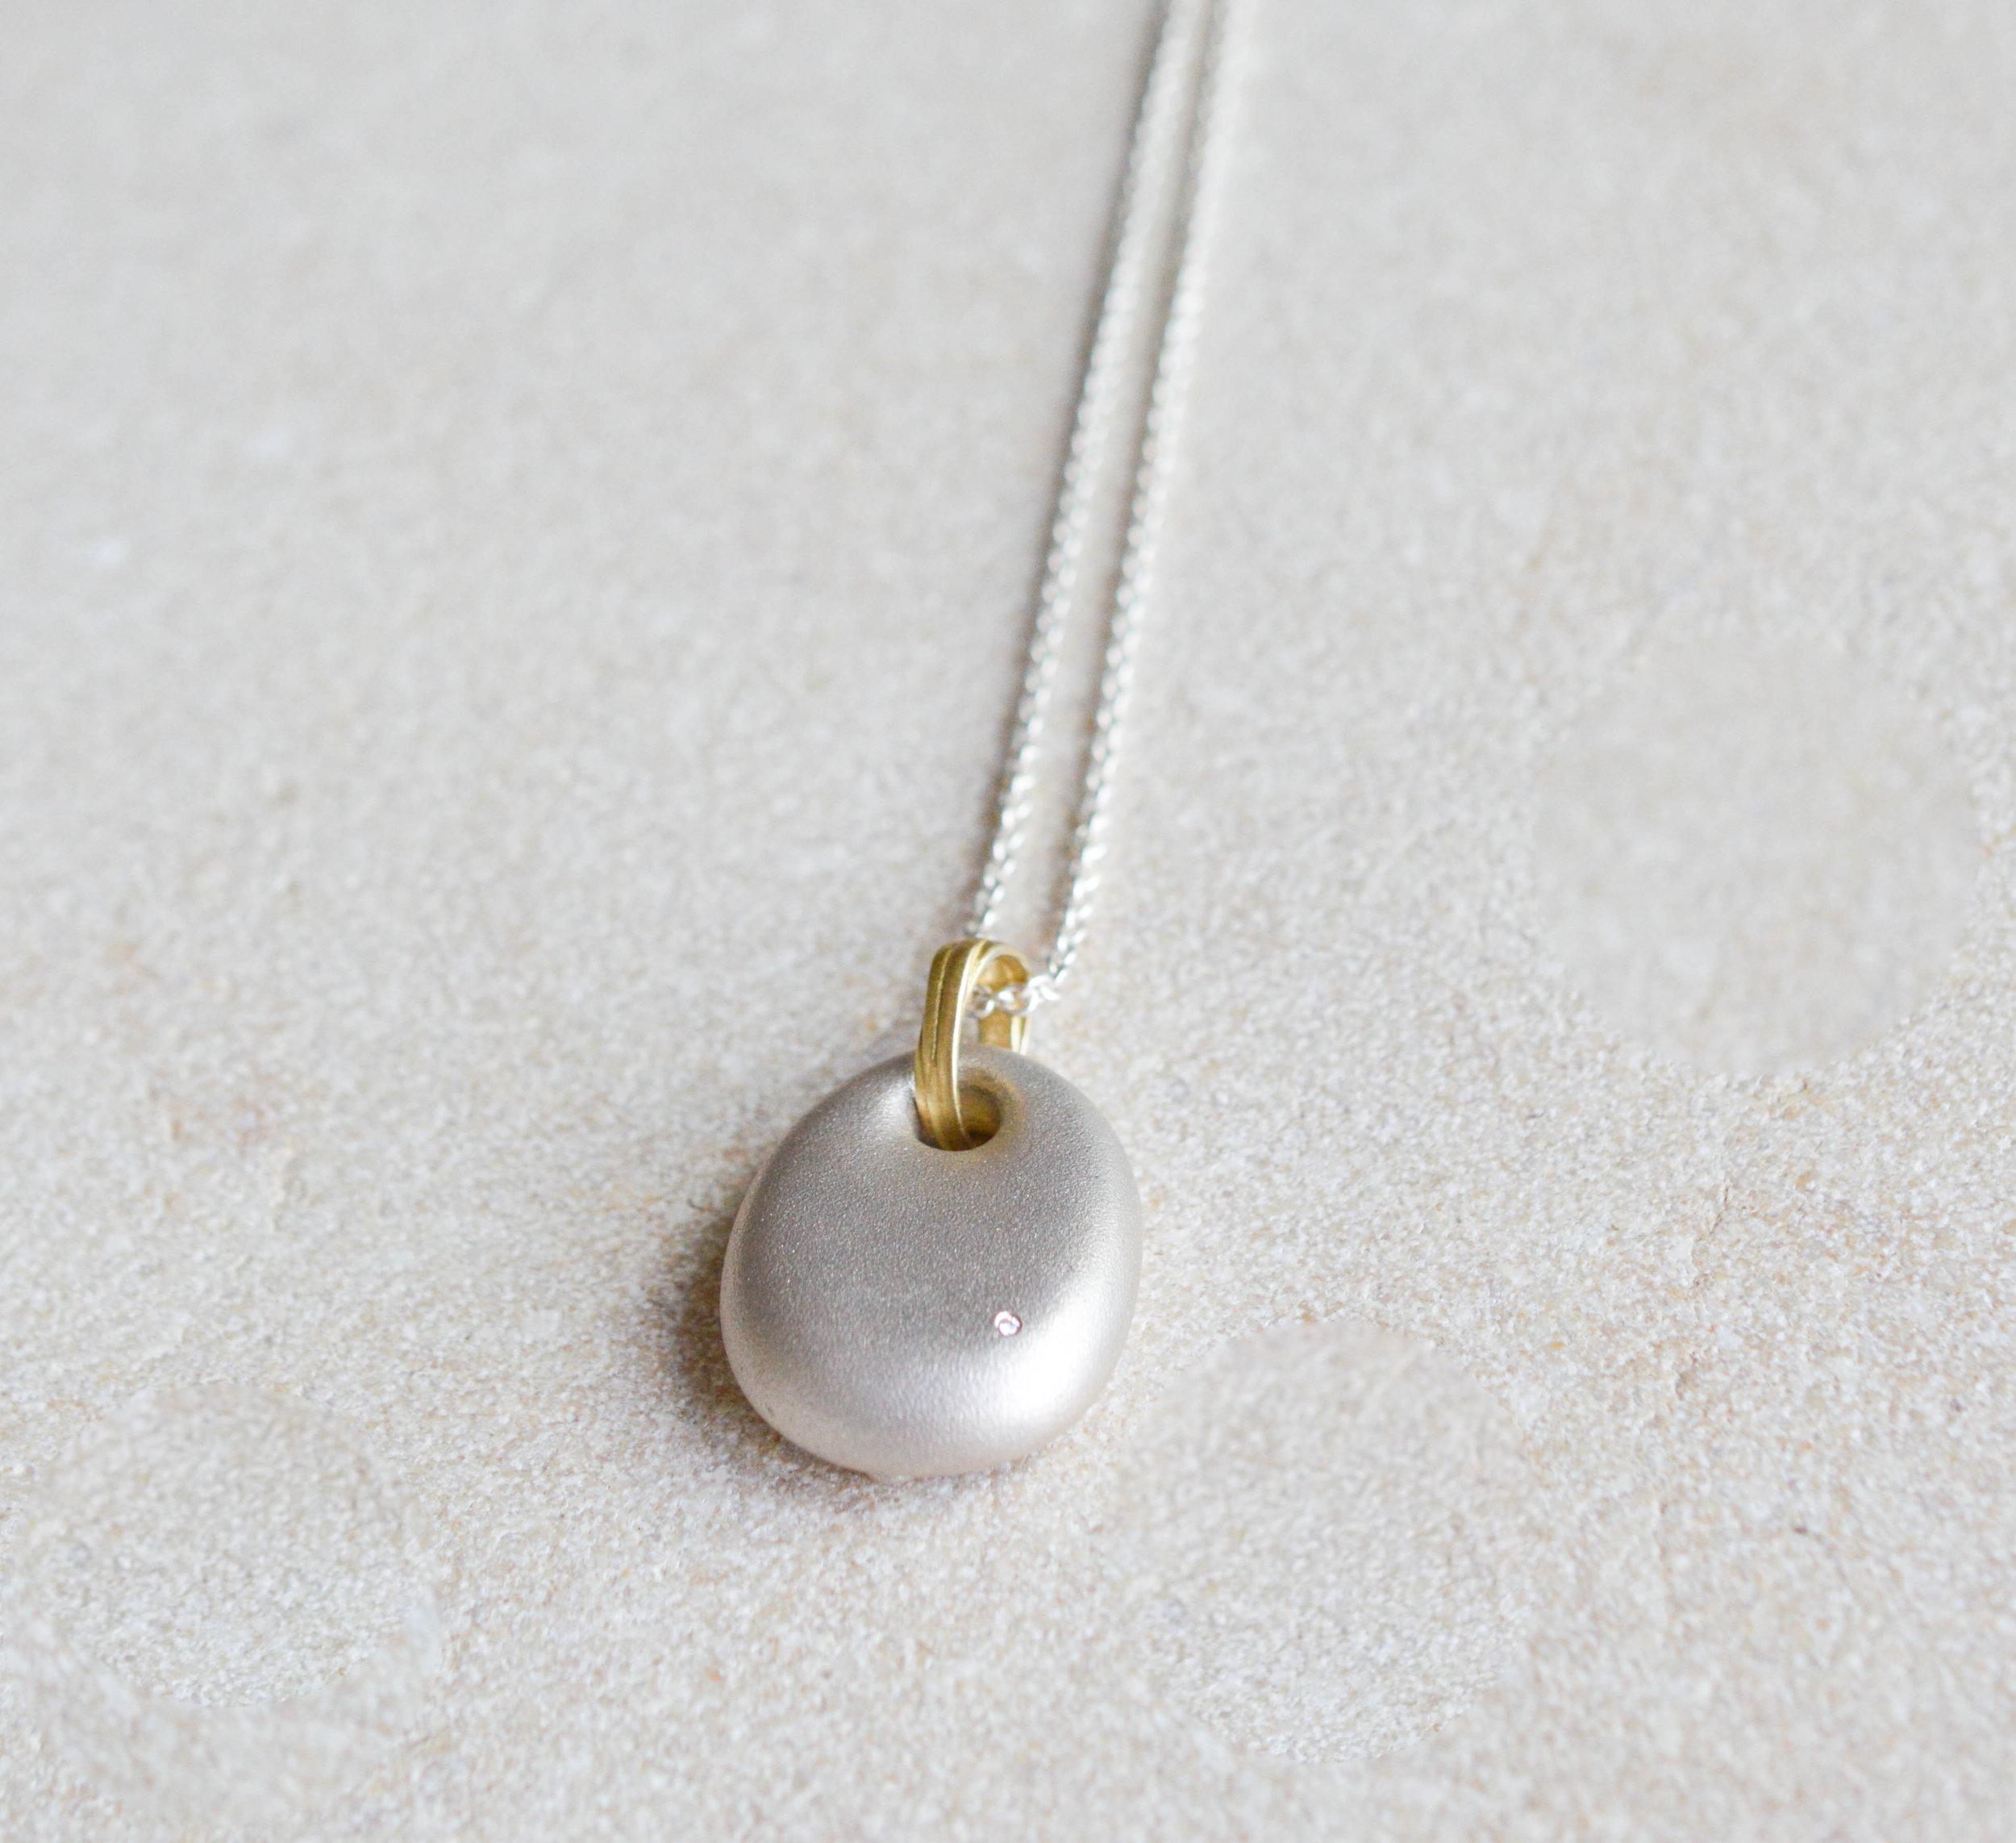 note-to-self-necklace-diamond-handmade-sterling-silver-gold-the-jewelry-project-elizabeth-irvine-truewellbeing.jpg